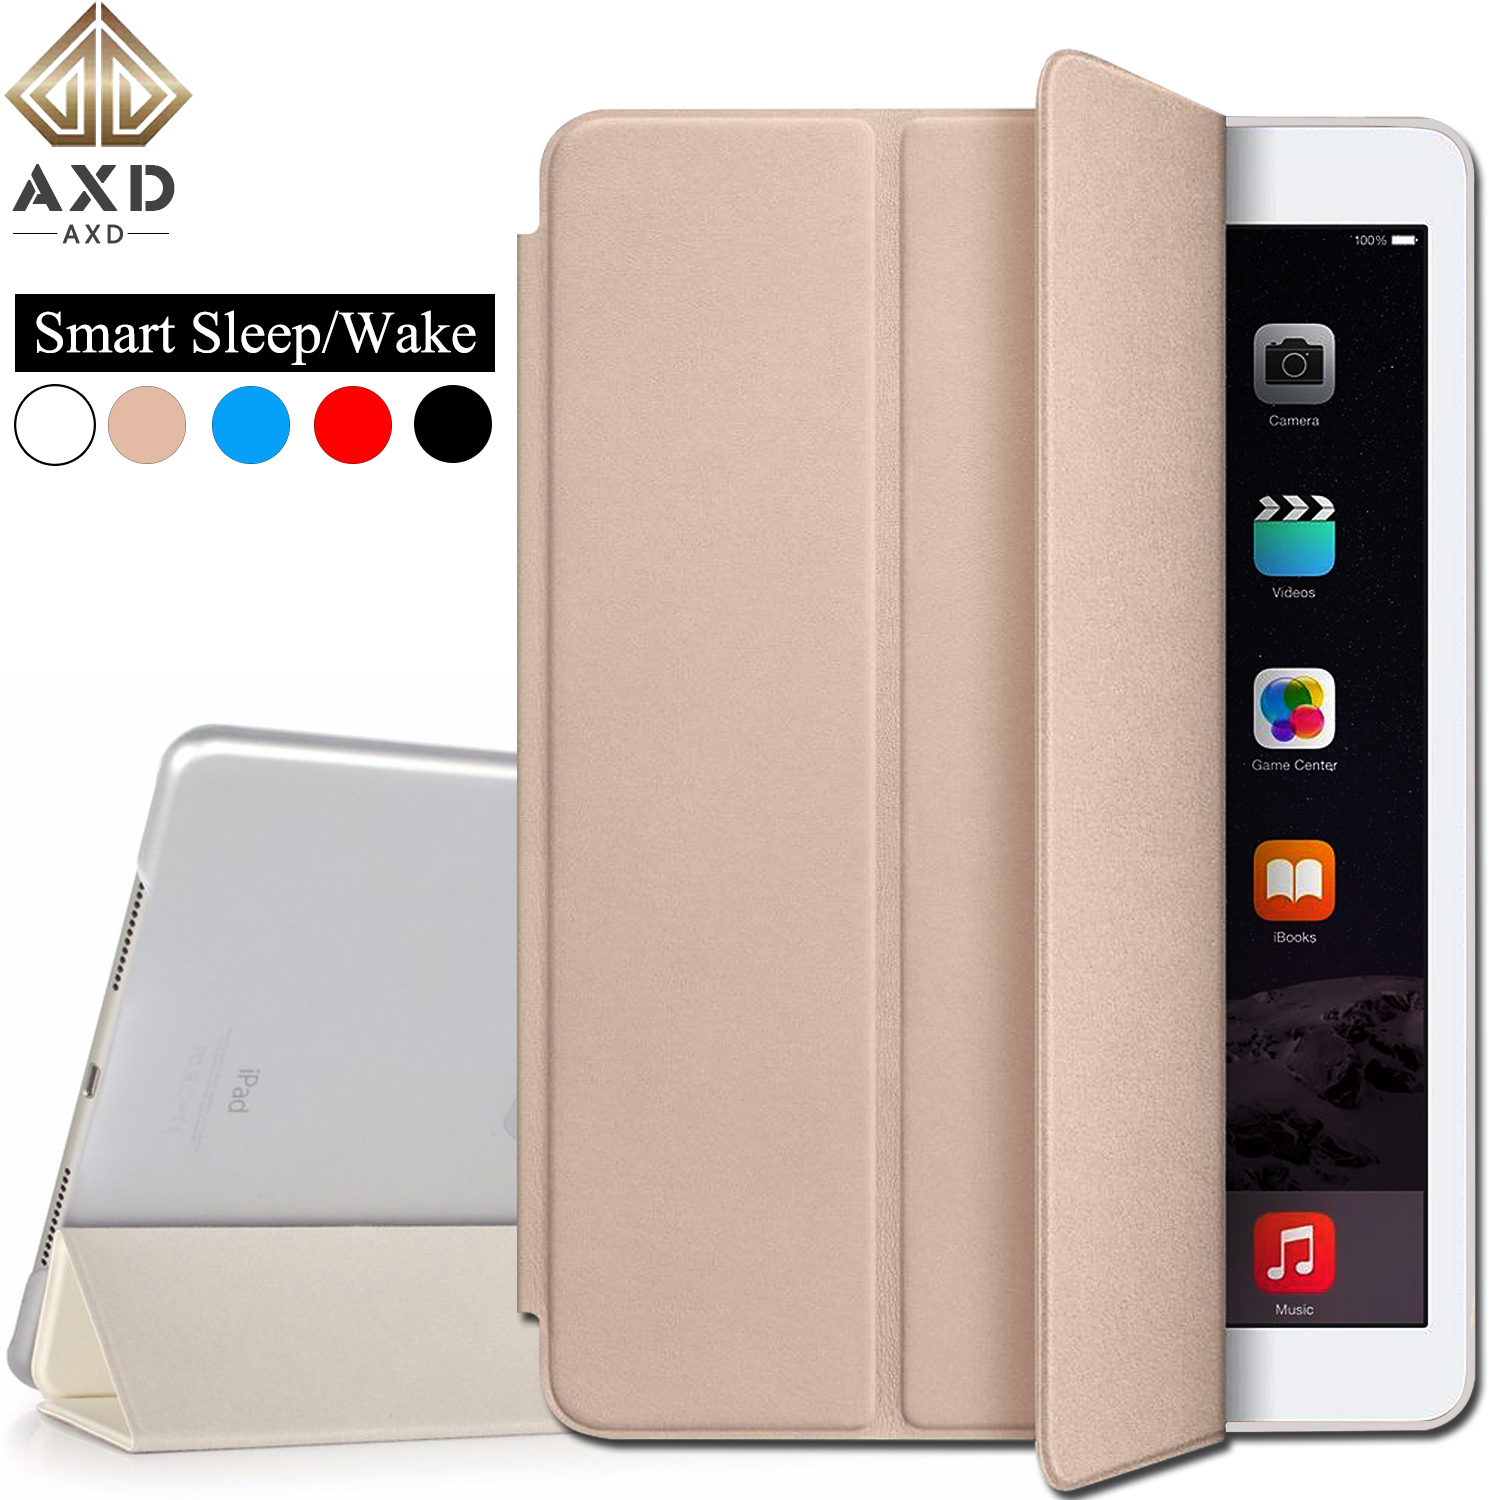 AXD Flip PU leather case for Apple ipad mini5 2019 7.9-inch fundas smart sleep Wake cover Stand capa coque For A2133 A2124 A2126AXD Flip PU leather case for Apple ipad mini5 2019 7.9-inch fundas smart sleep Wake cover Stand capa coque For A2133 A2124 A2126